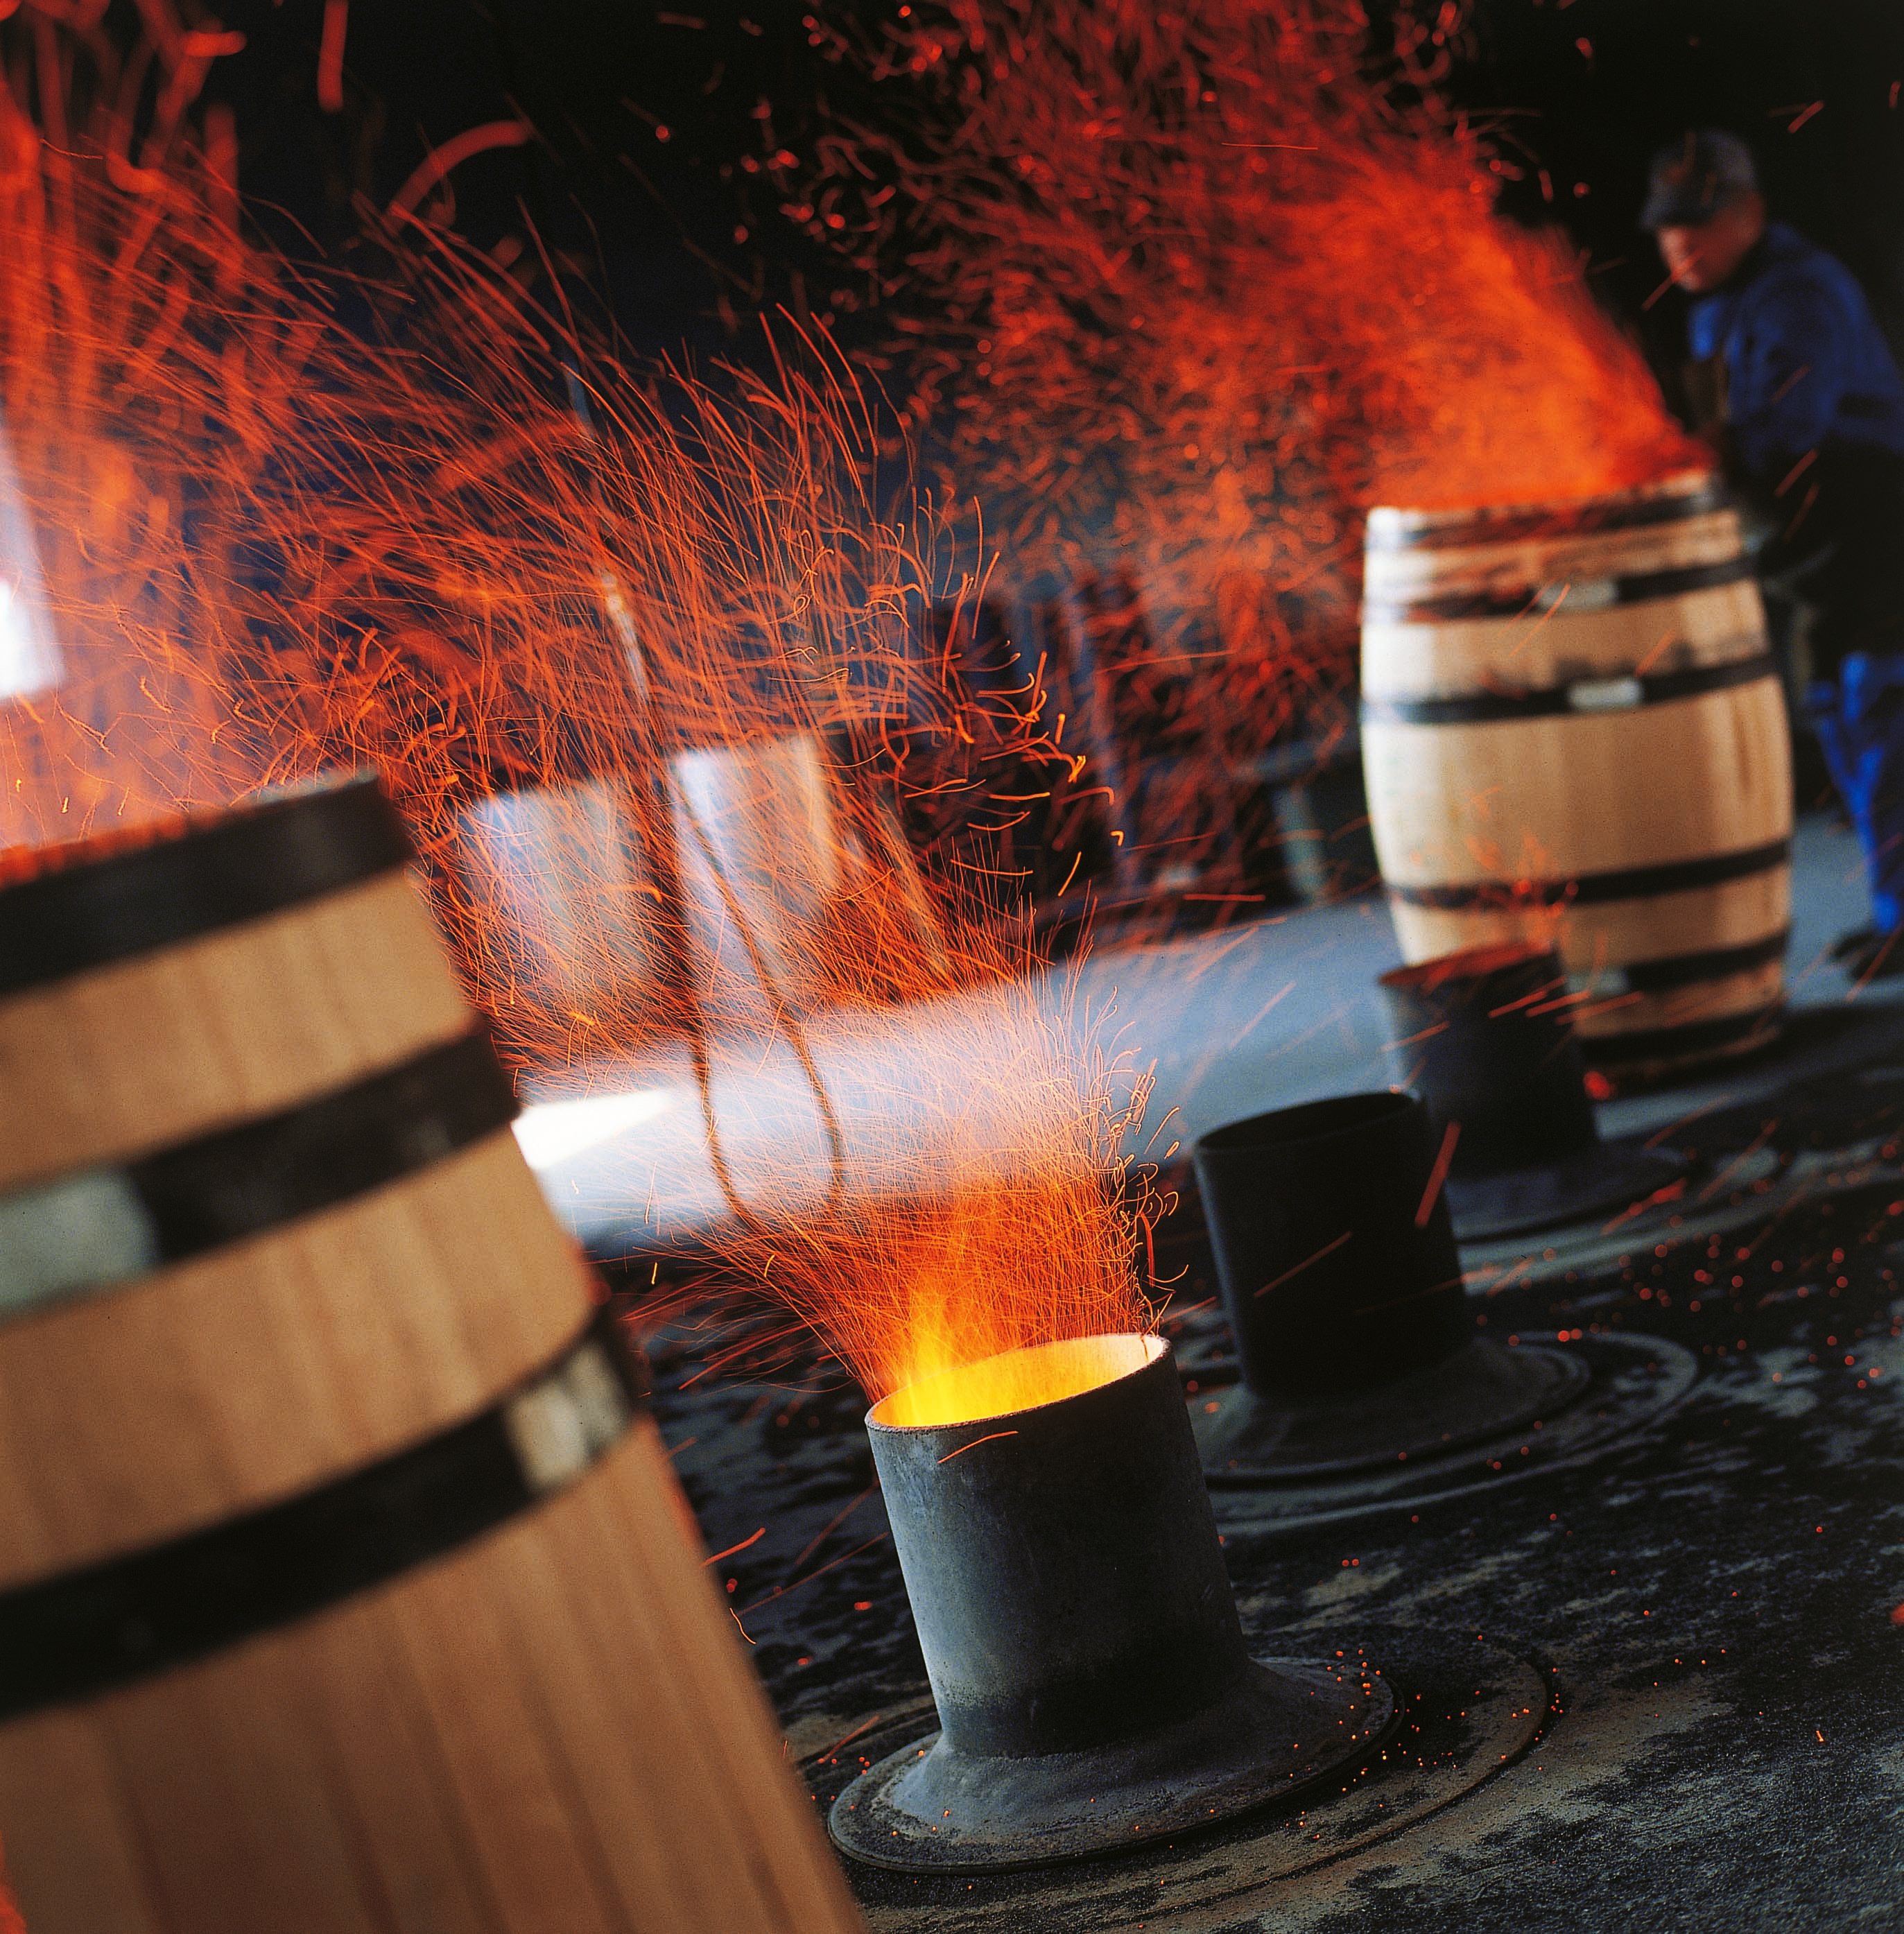 Toasting at the cooperage